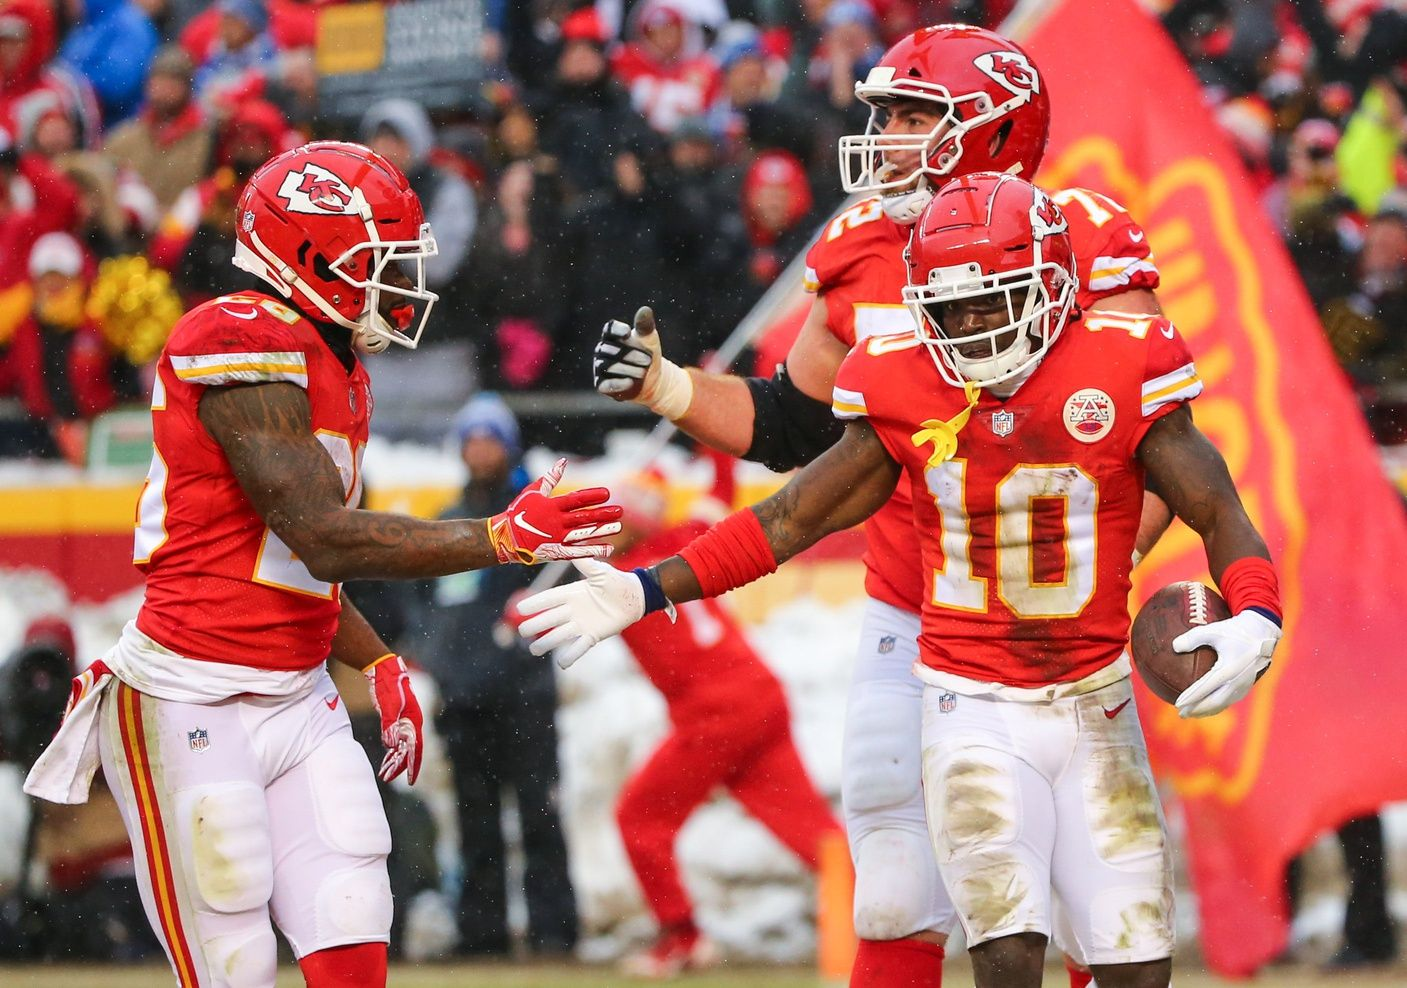 Chiefs put out a hype video Kc chiefs, Chief